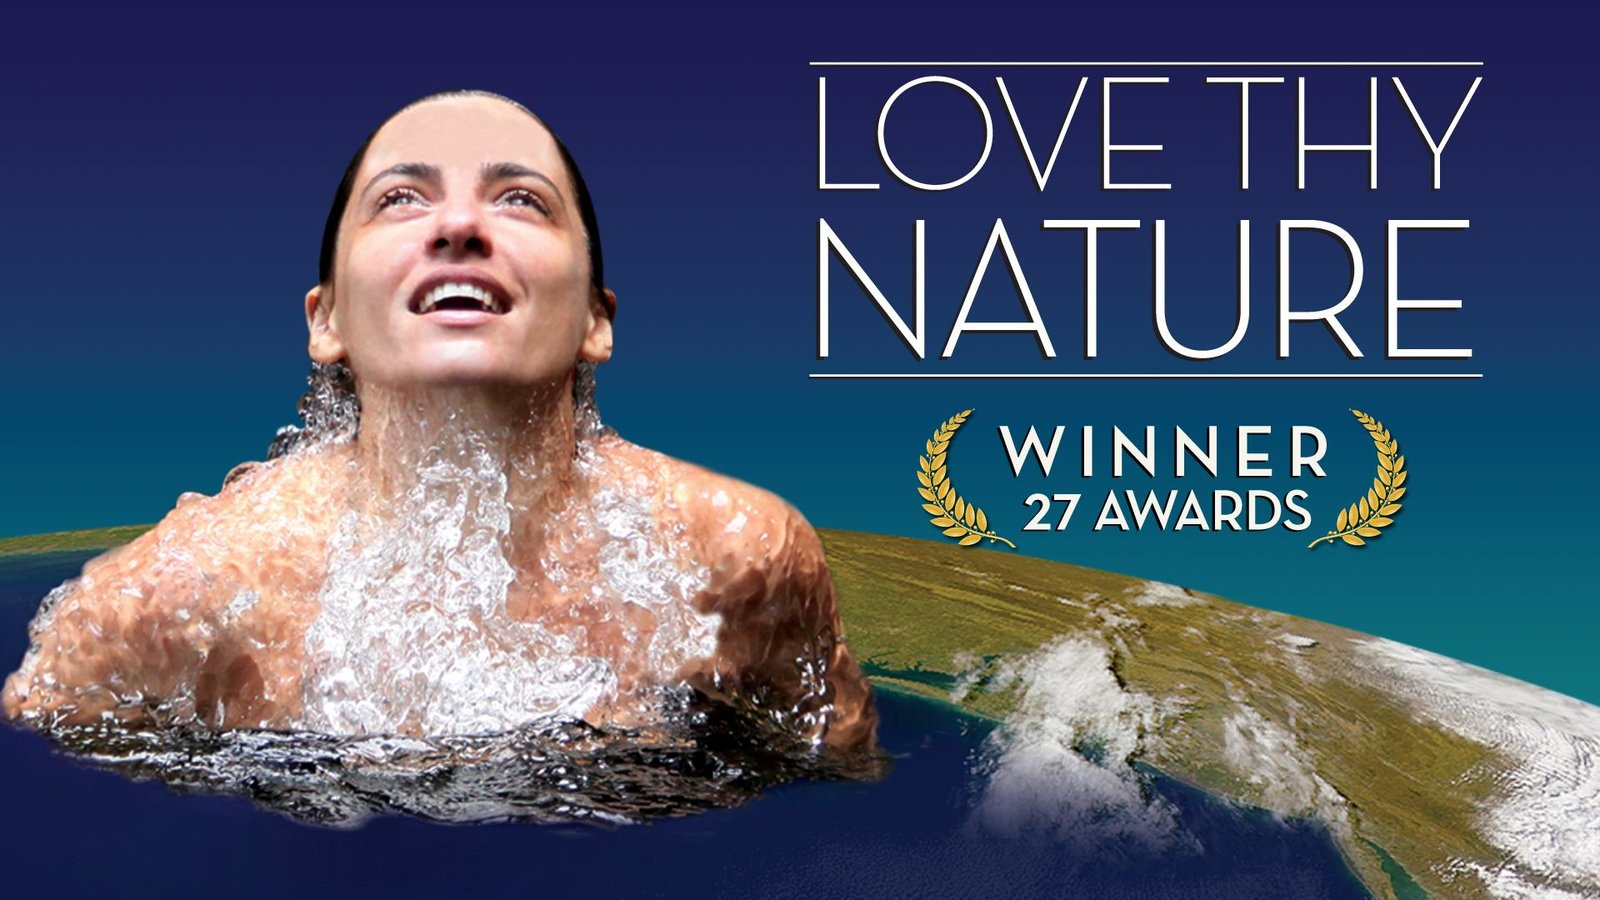 Love Thy Nature - A Vital Journey Into the Natural World